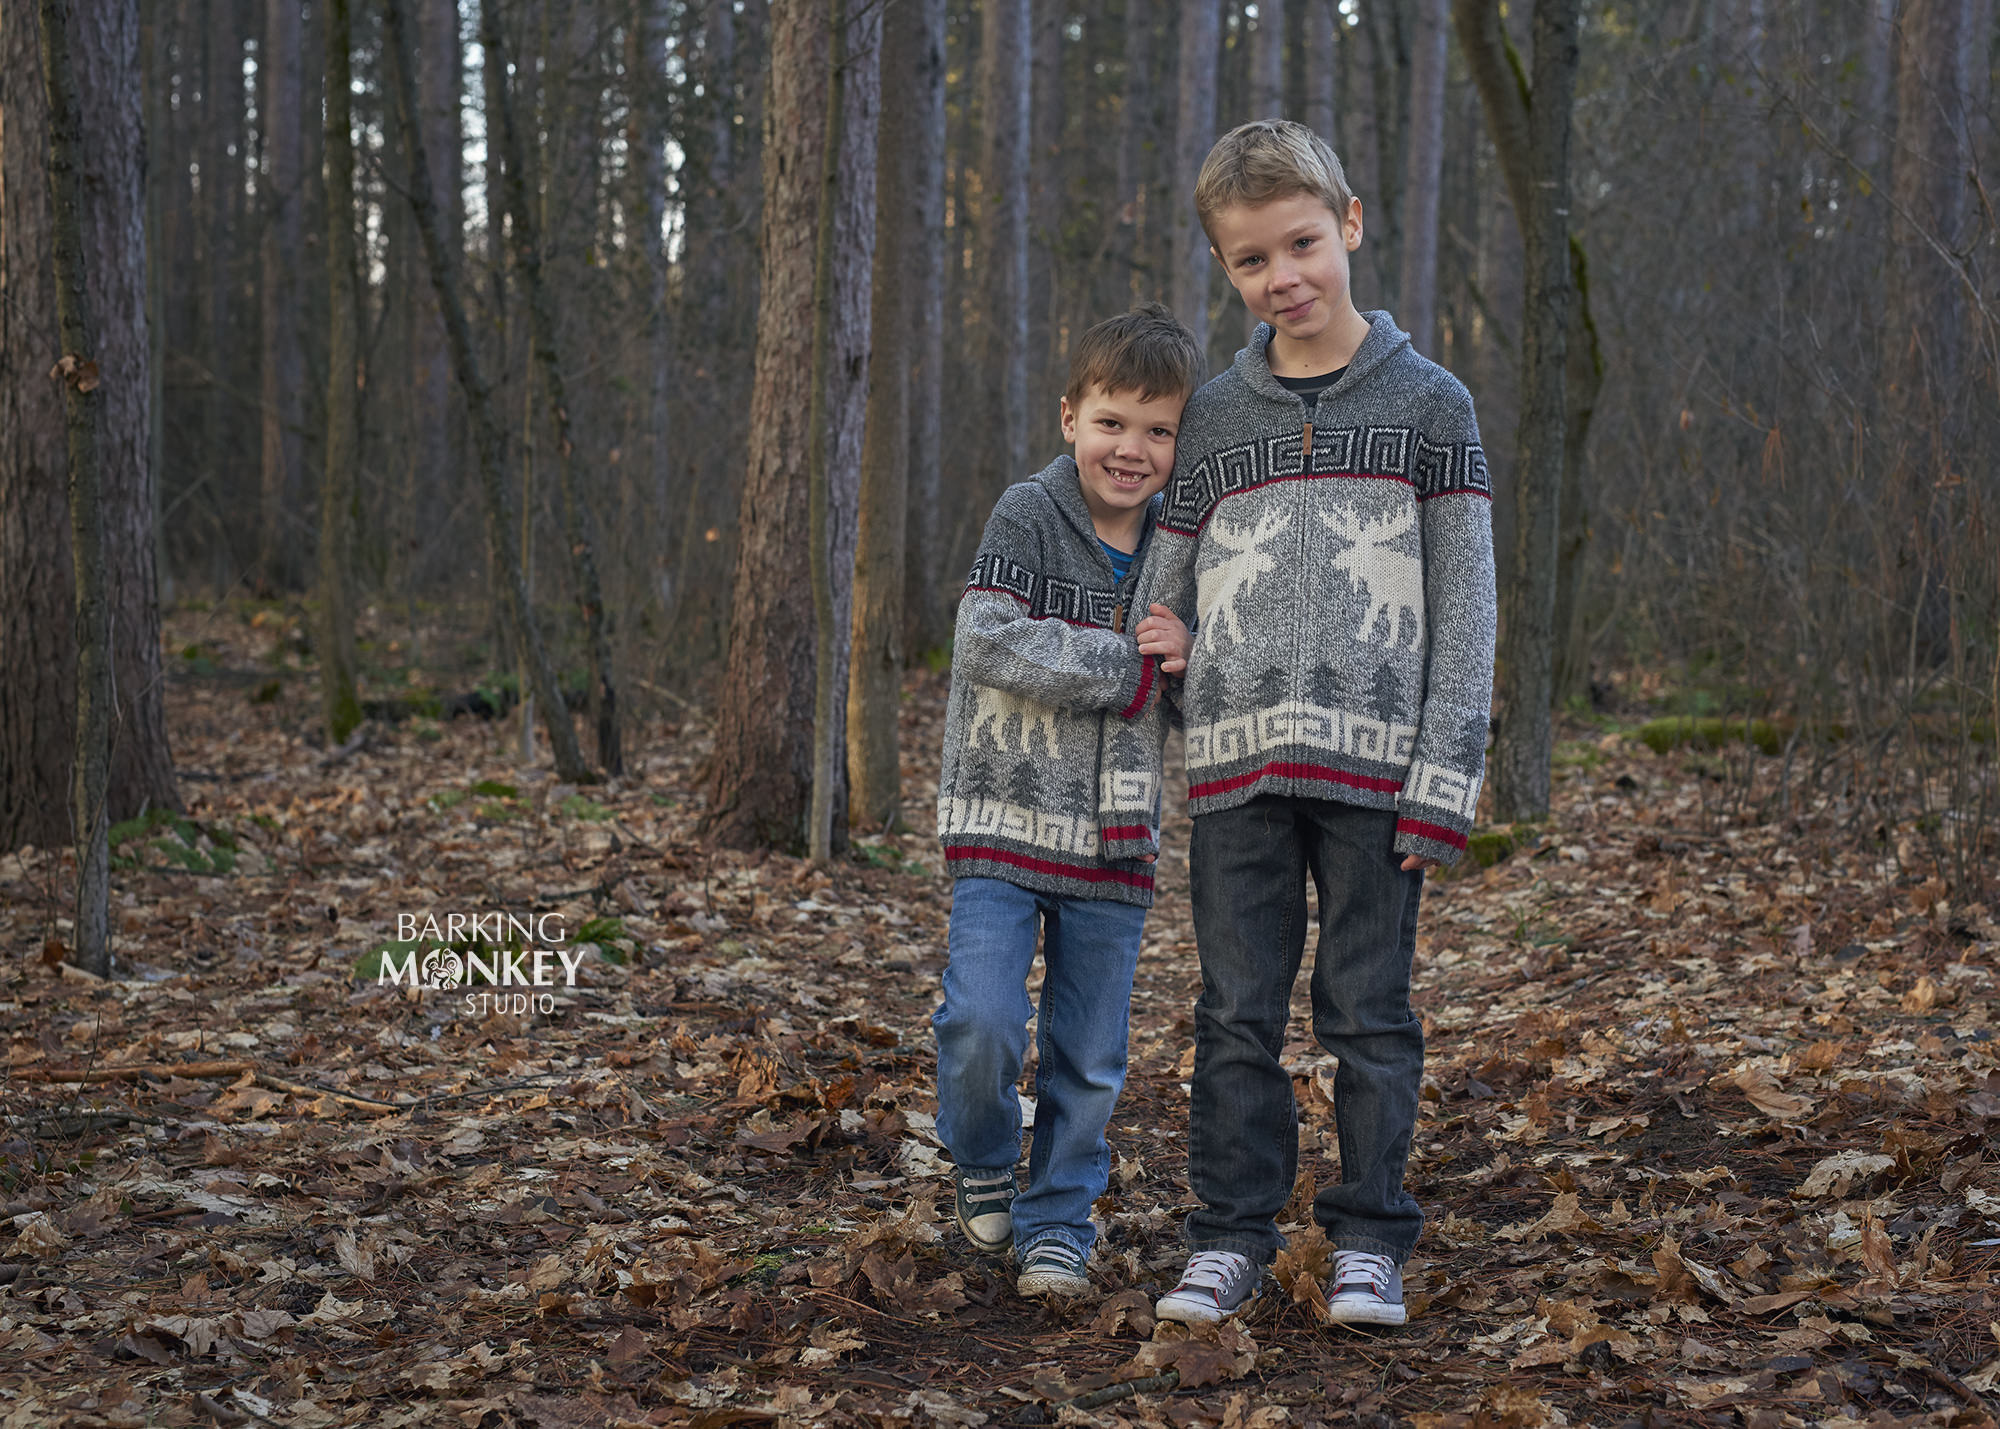 brothers outdoor fall fun family portrait ottawa kemptville